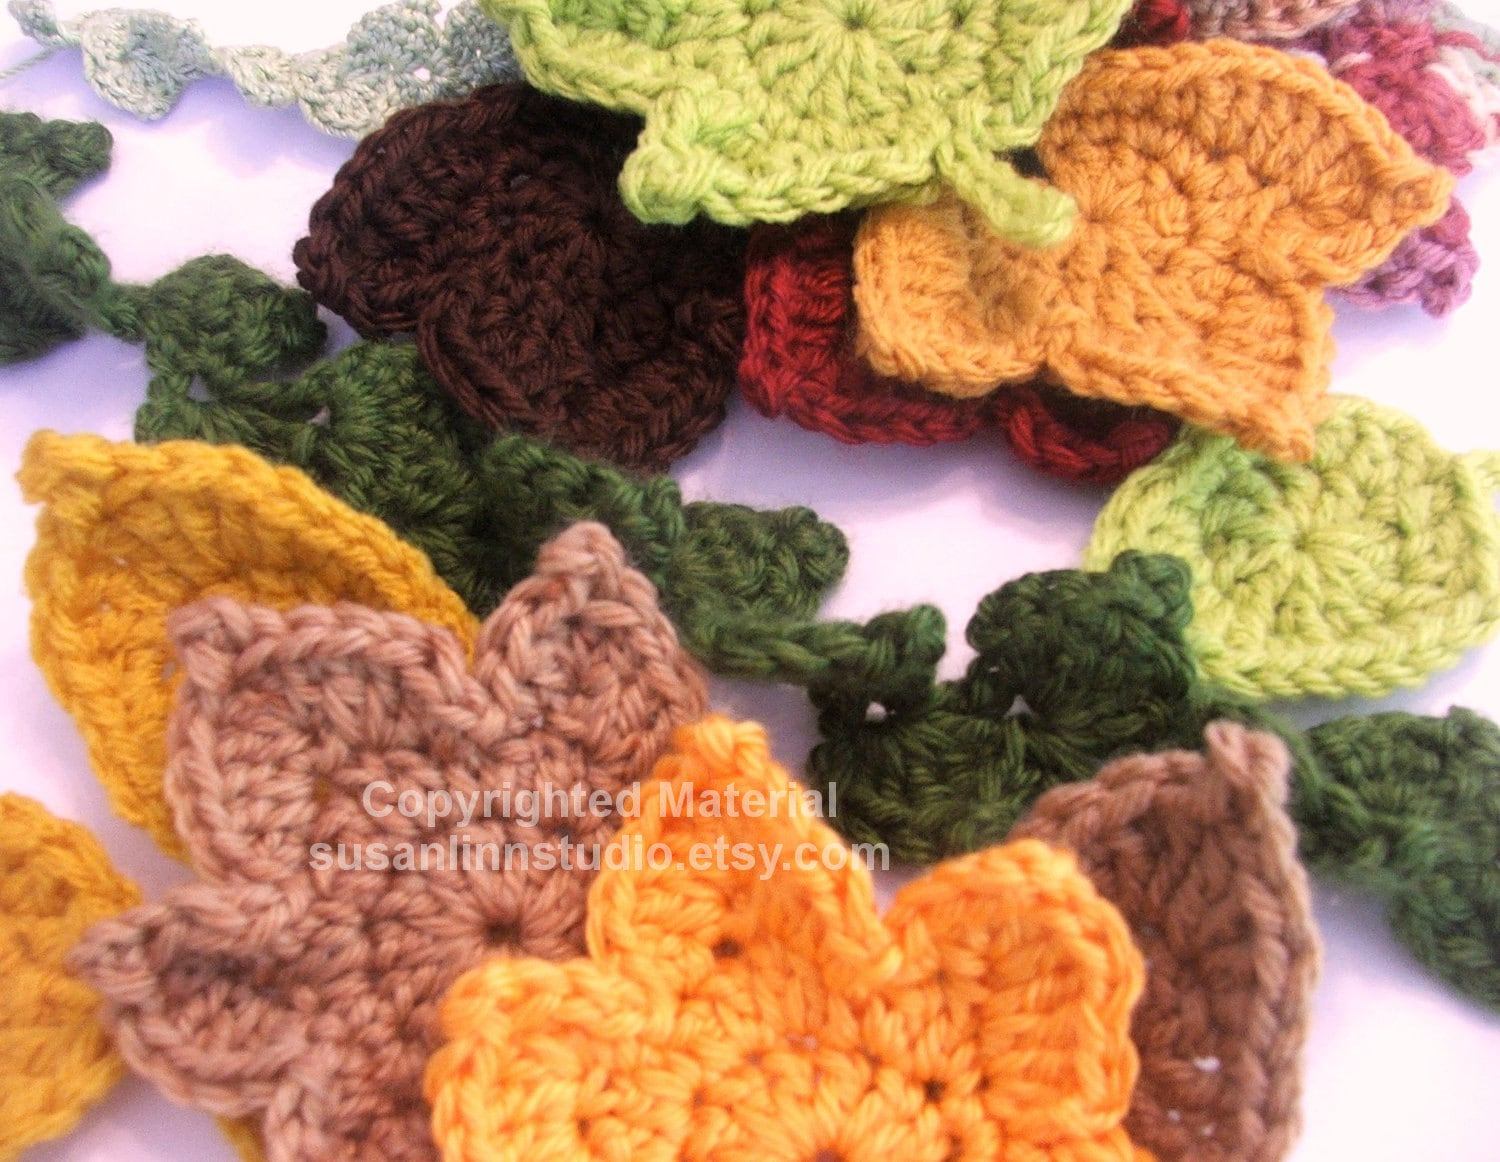 SALE leaf Crochet PATTERNs - 2 Fast and EASY Fall Maple Leaf Crochet ...